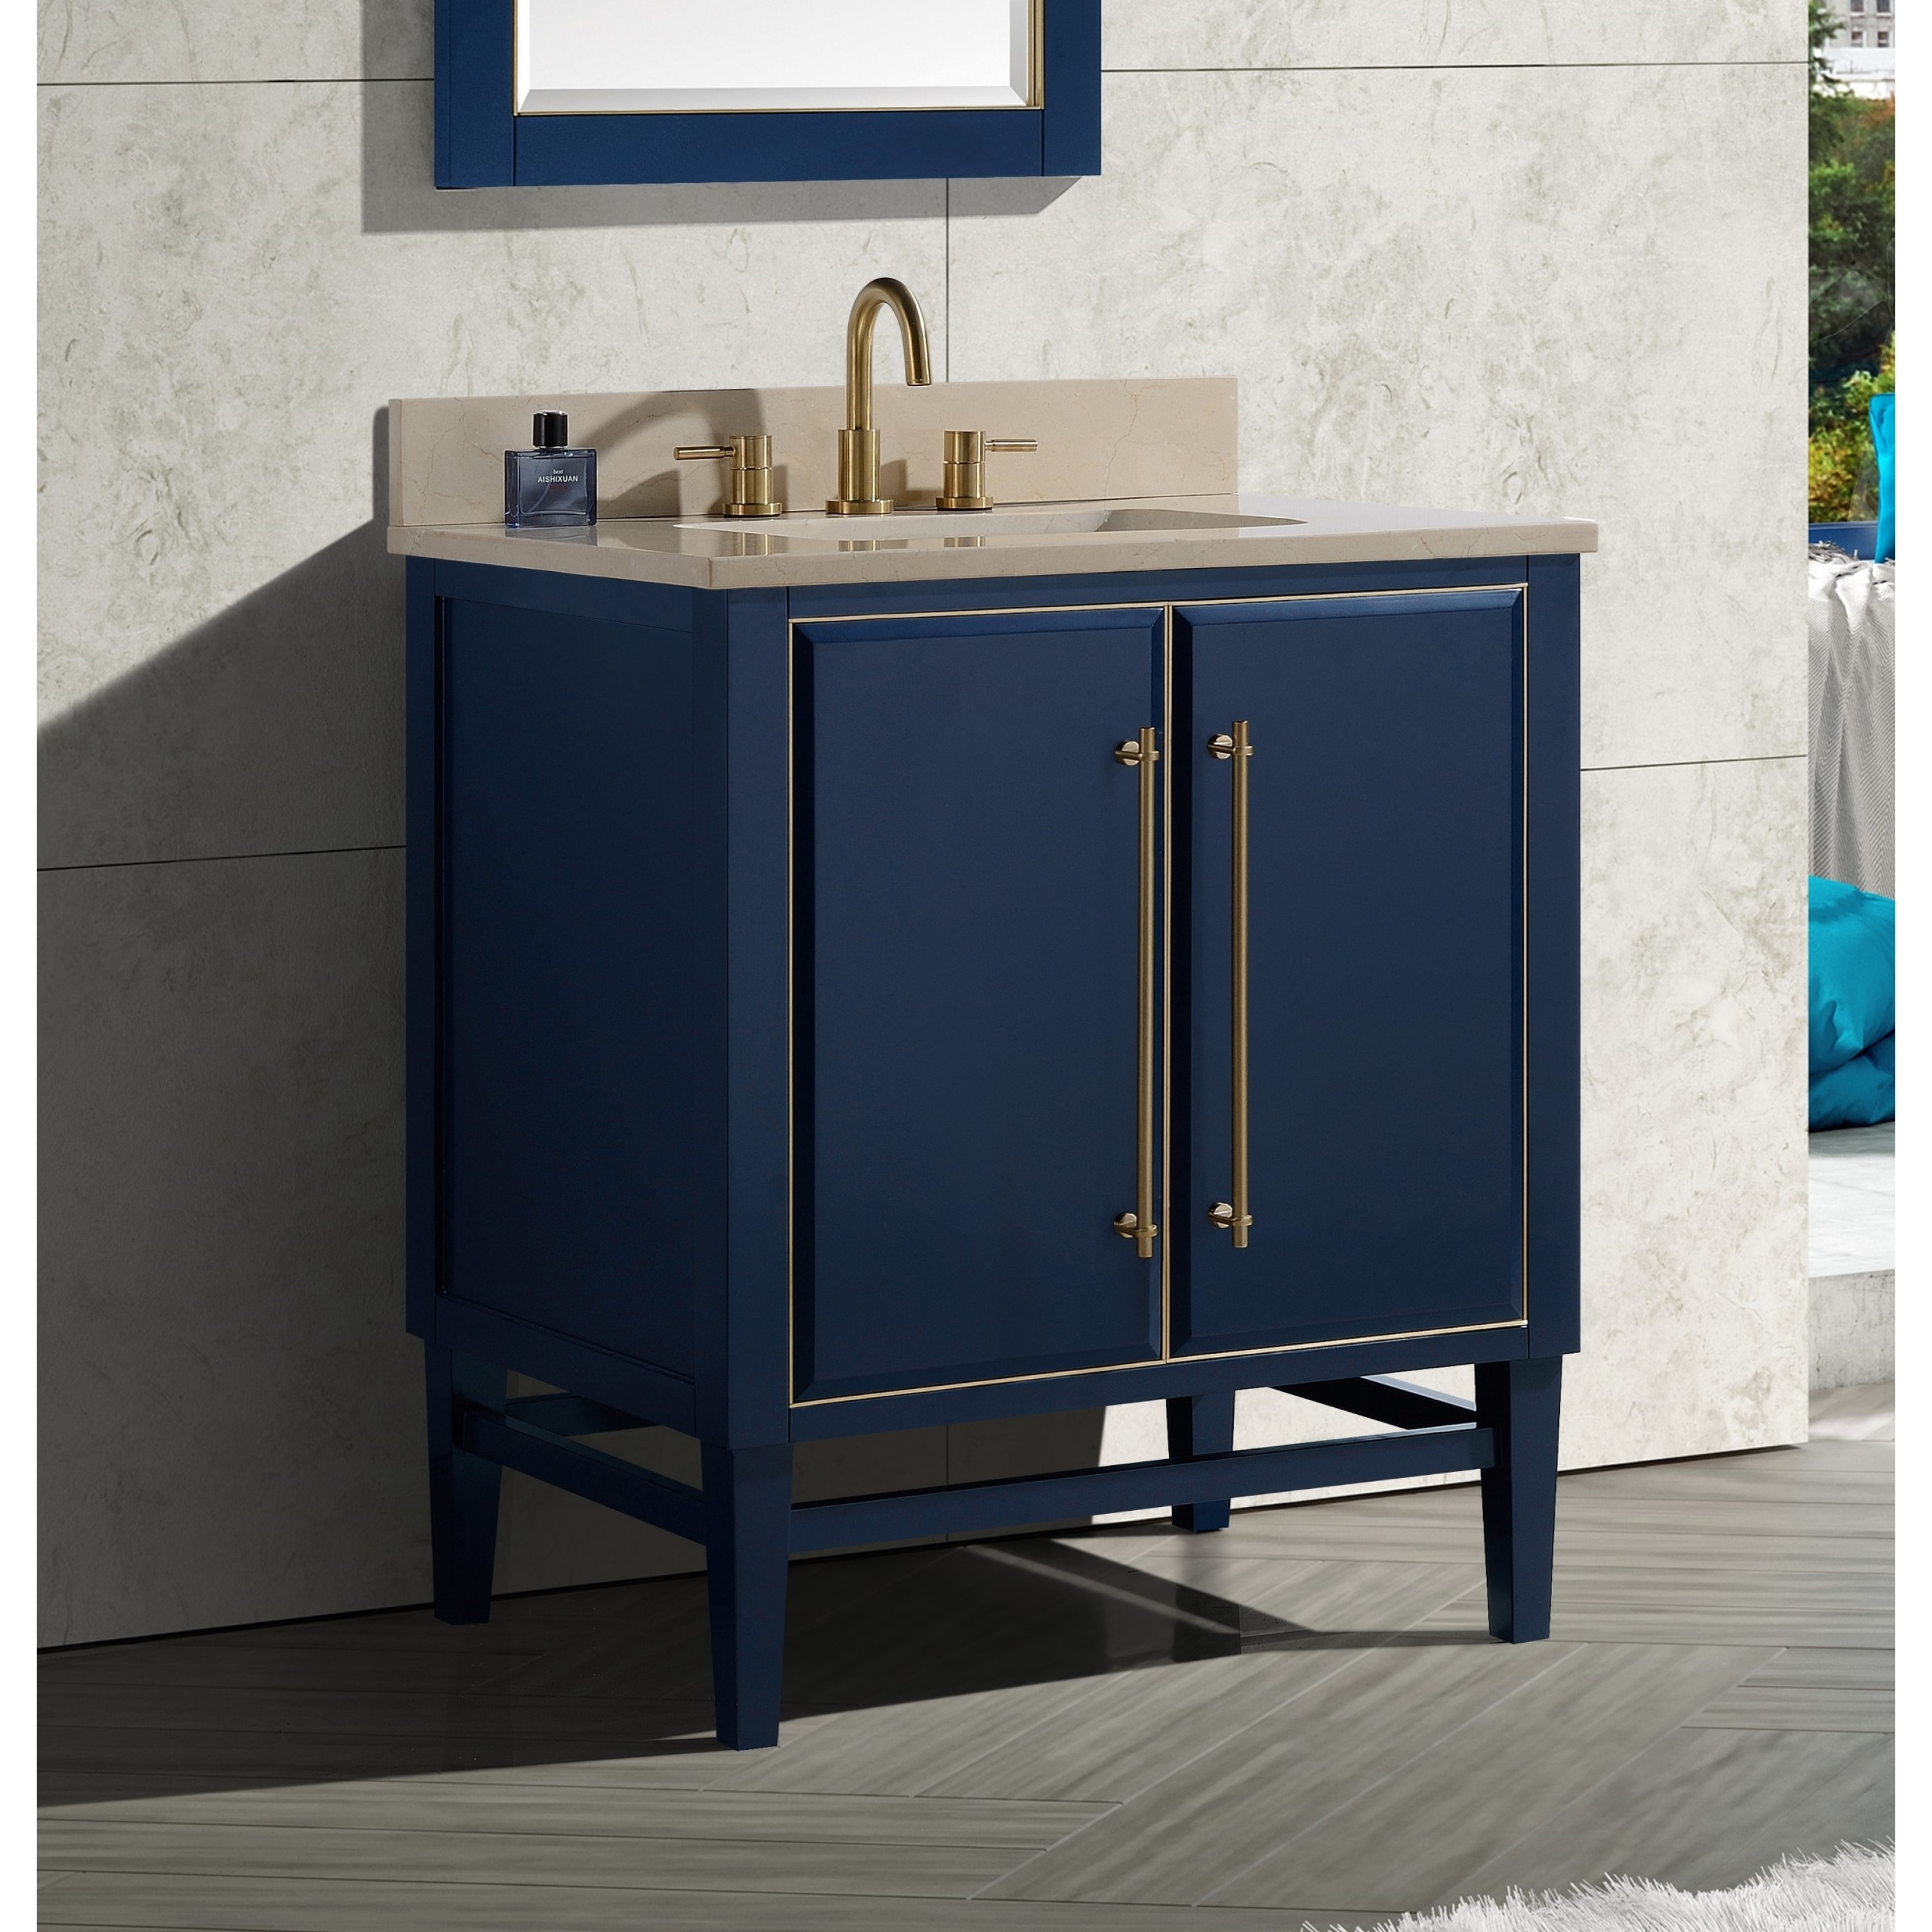 Shop Avanity Mason 31 In Single Sink Bathroom Vanity Set In Navy Blue With Gold Trim Overstock 28670947 Crema Marfil Marble